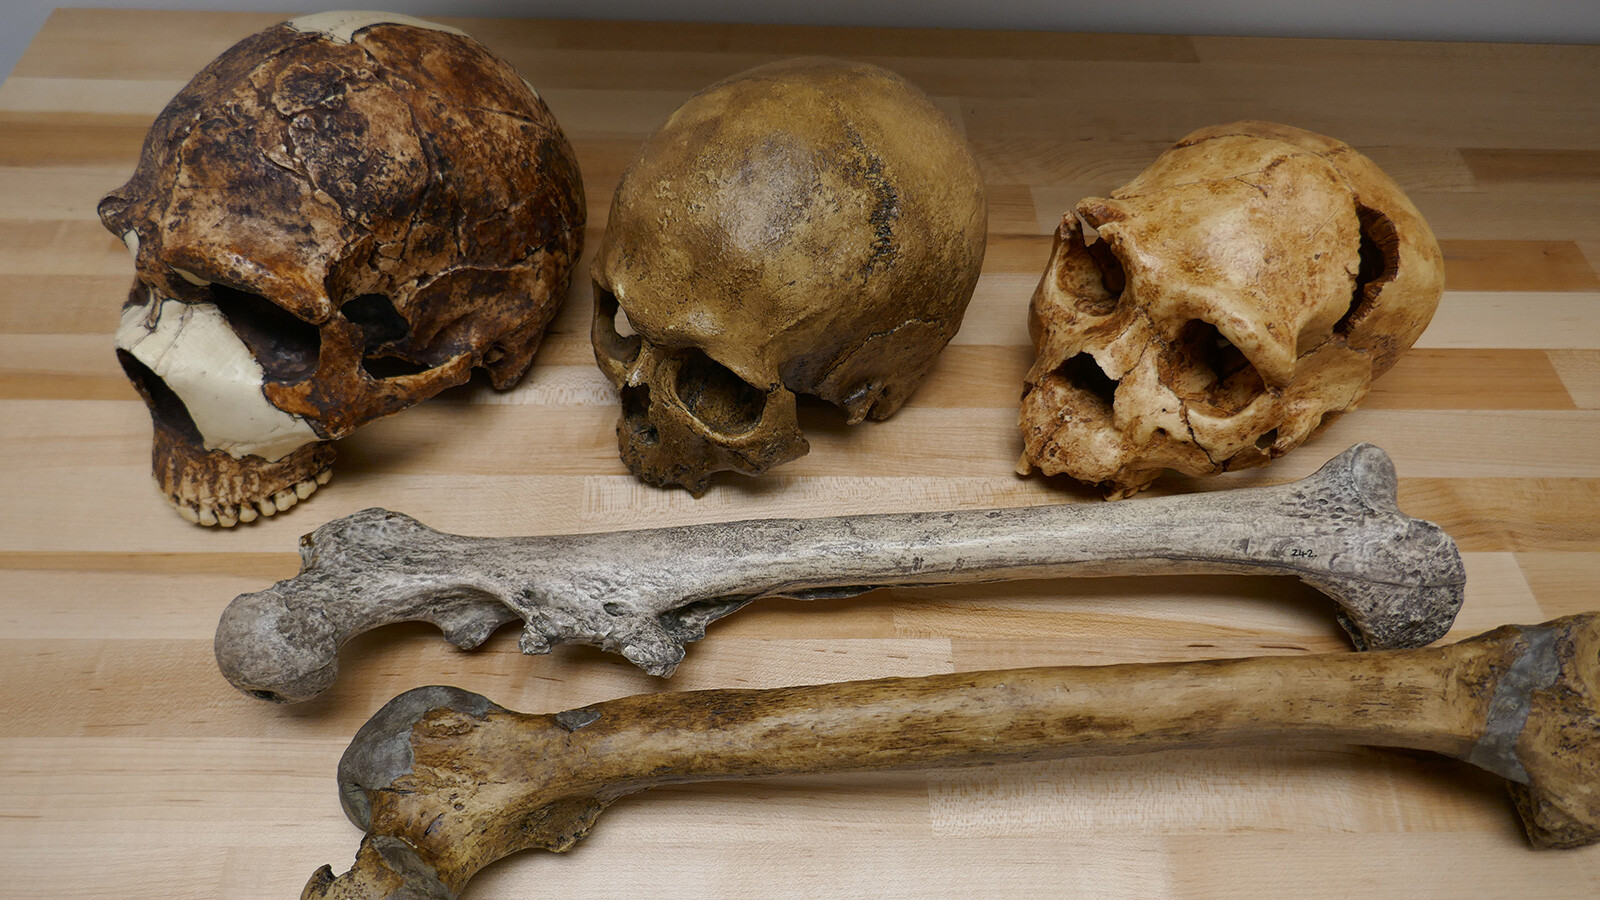 Climate change altered the size of human bodies